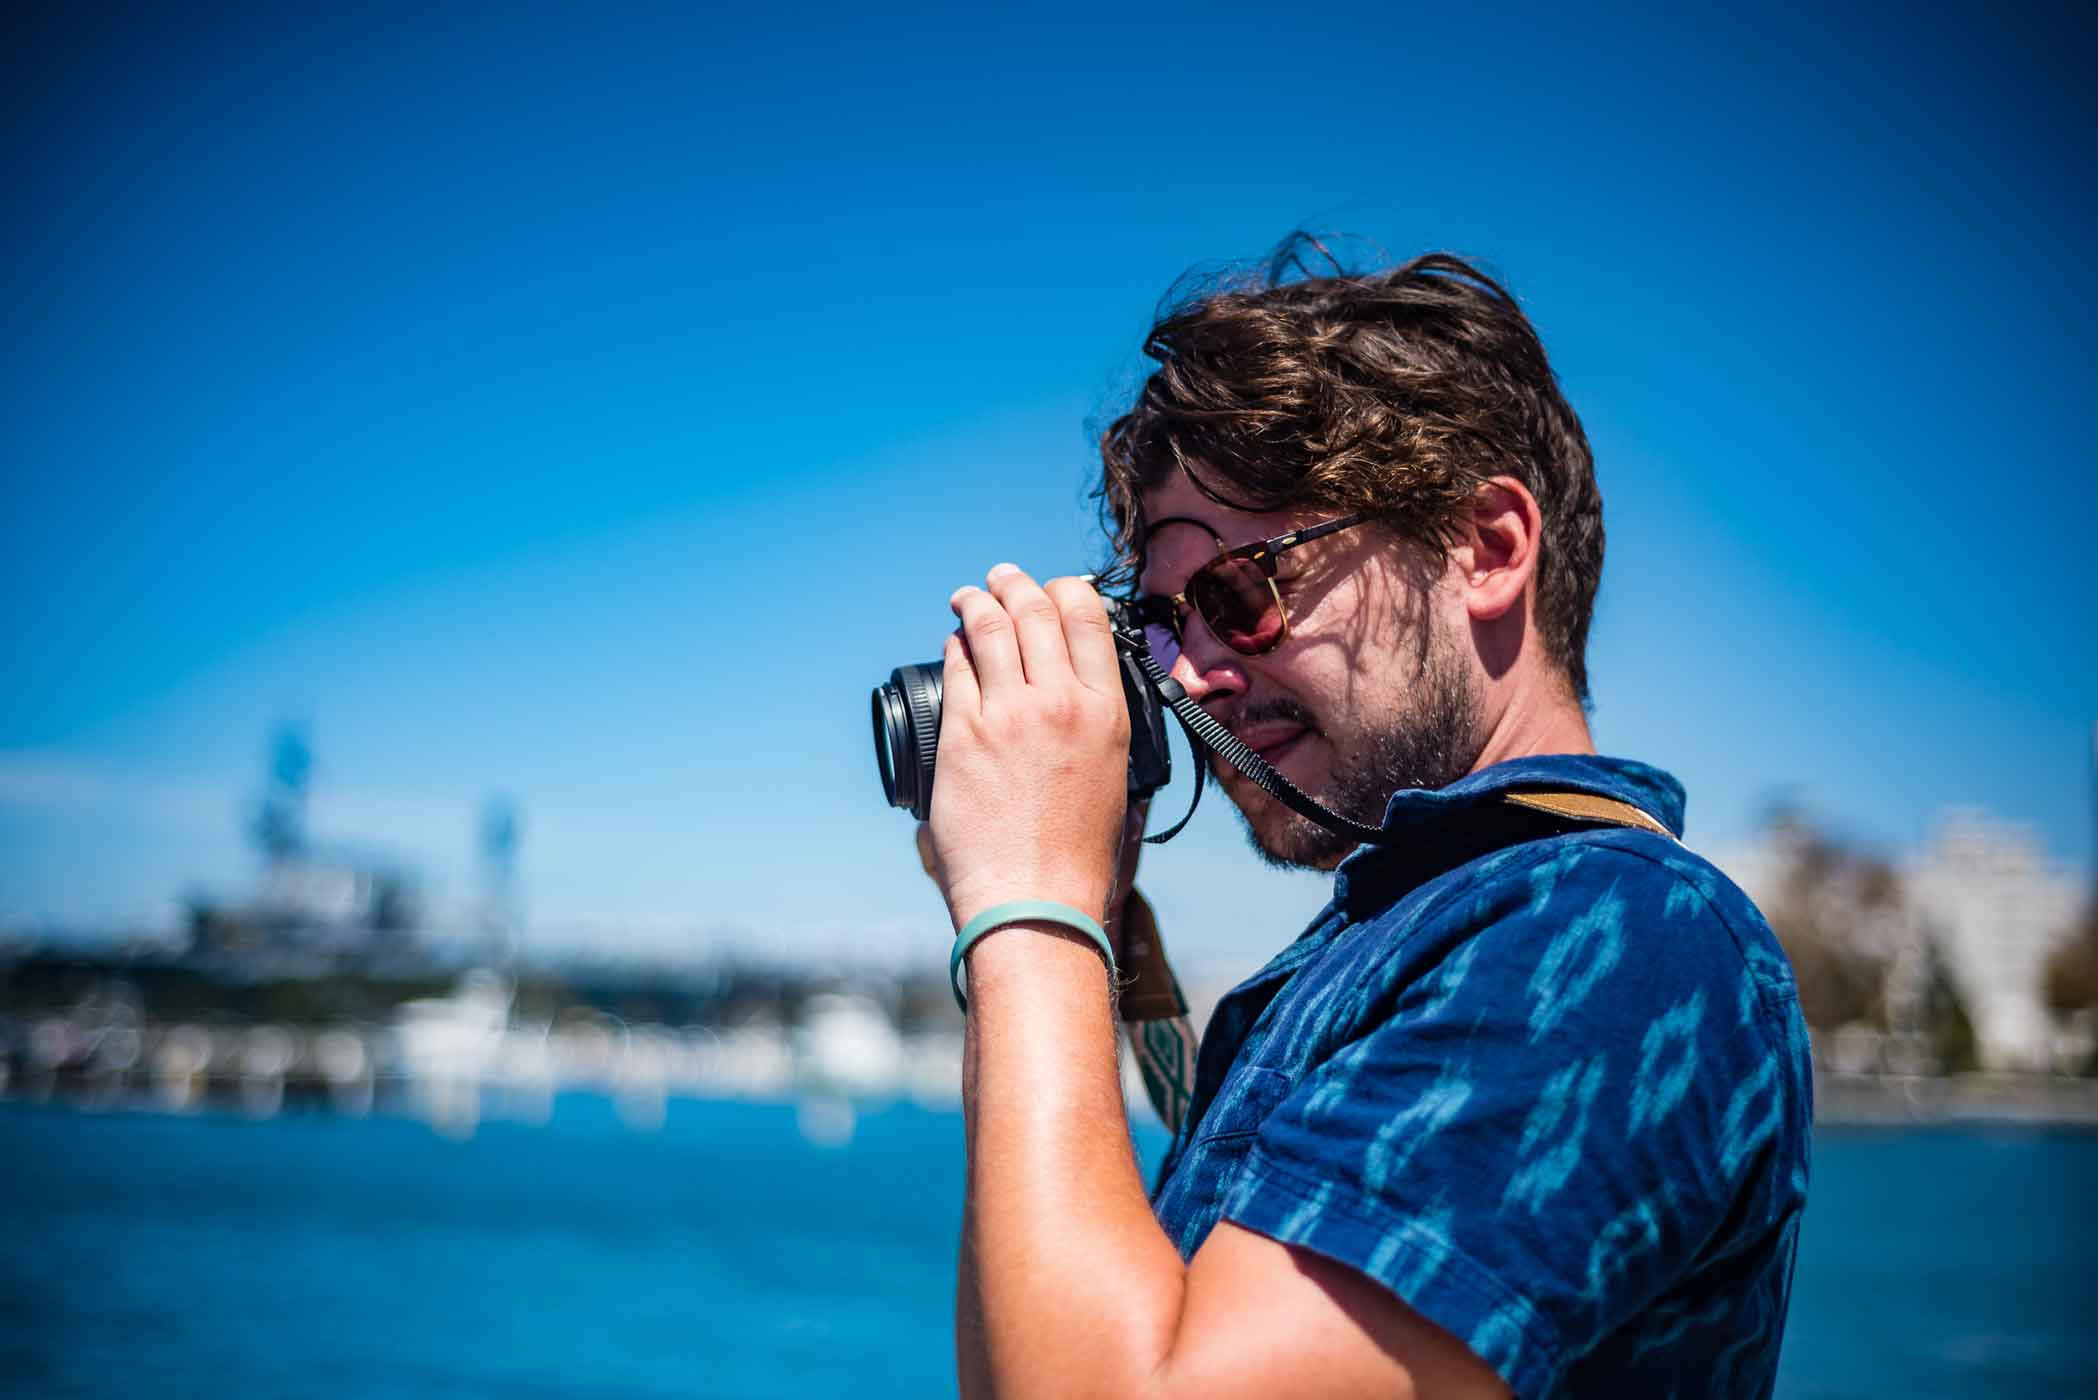 smlSan-Diego-Vacation---August-2015-95.jpg